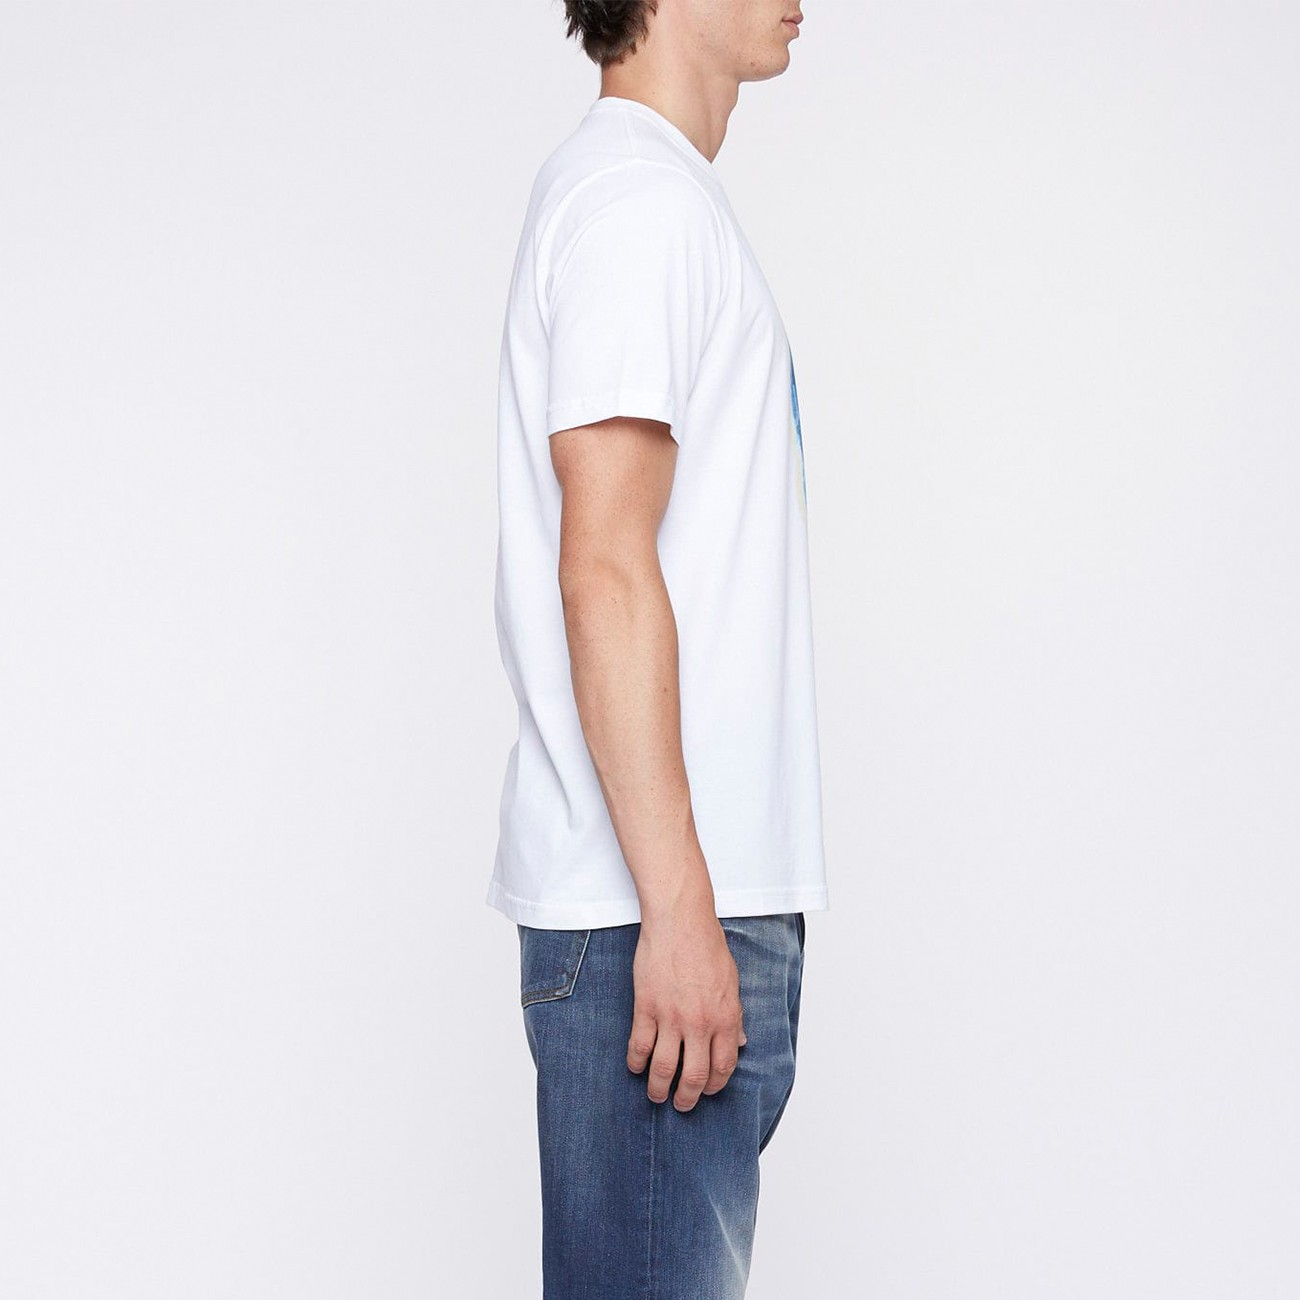 WHITE SKULL T-SHIRT IN X-RAYS PS PAUL SMITH M2R-011R-FP2603-01